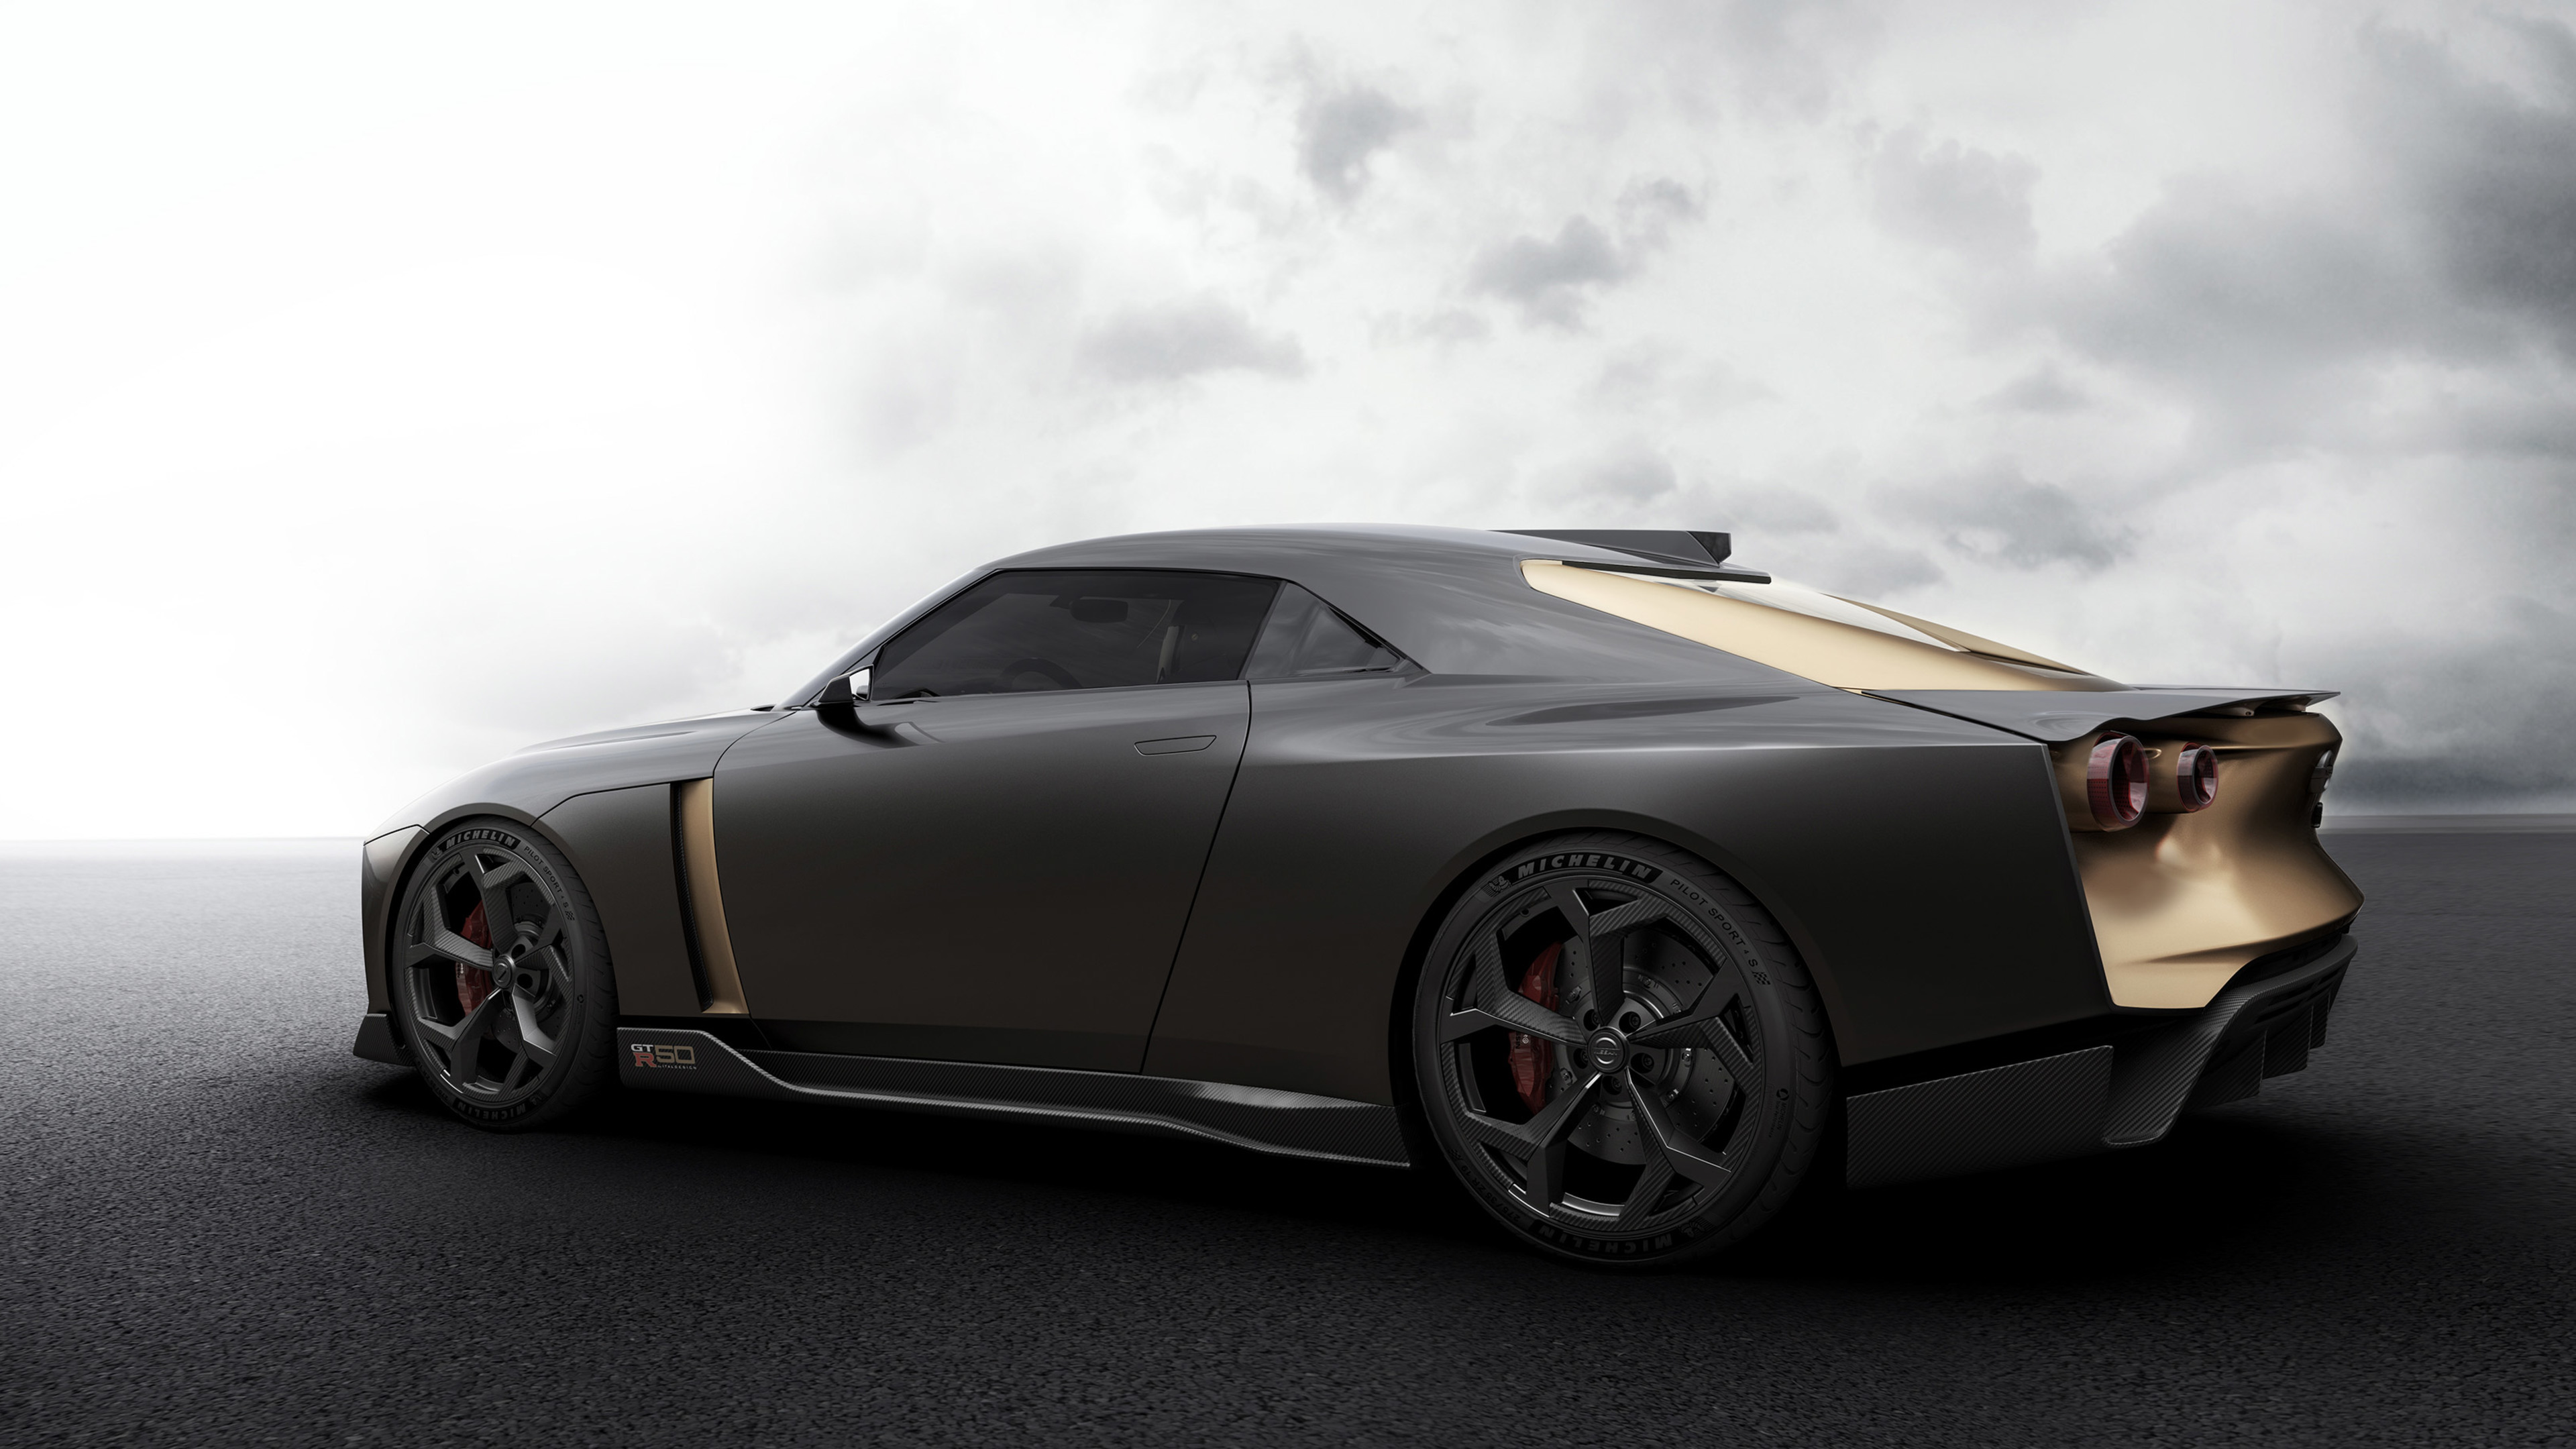 nissan gt r50 concept 2018 side view 1539112178 - Nissan GT R50 Concept 2018 Side View - nissan wallpapers, nissan gt r50 wallpapers, hd-wallpapers, concept cars wallpapers, 4k-wallpapers, 2018 cars wallpapers